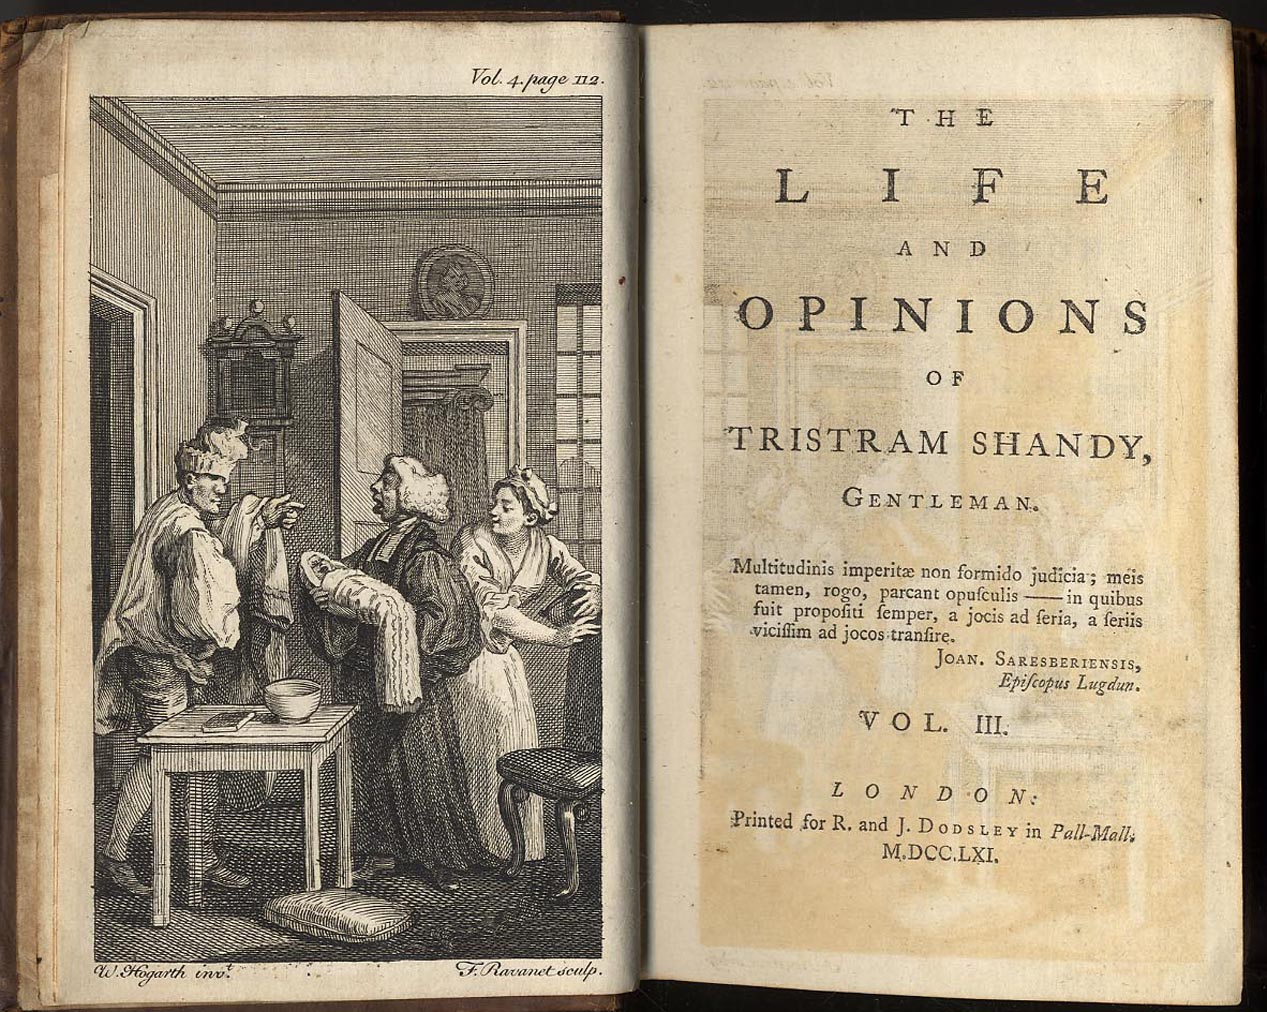 LAURENCE STERNS, TRISTRAM SHANDY, FIRST EDITION, volume three Table For Three